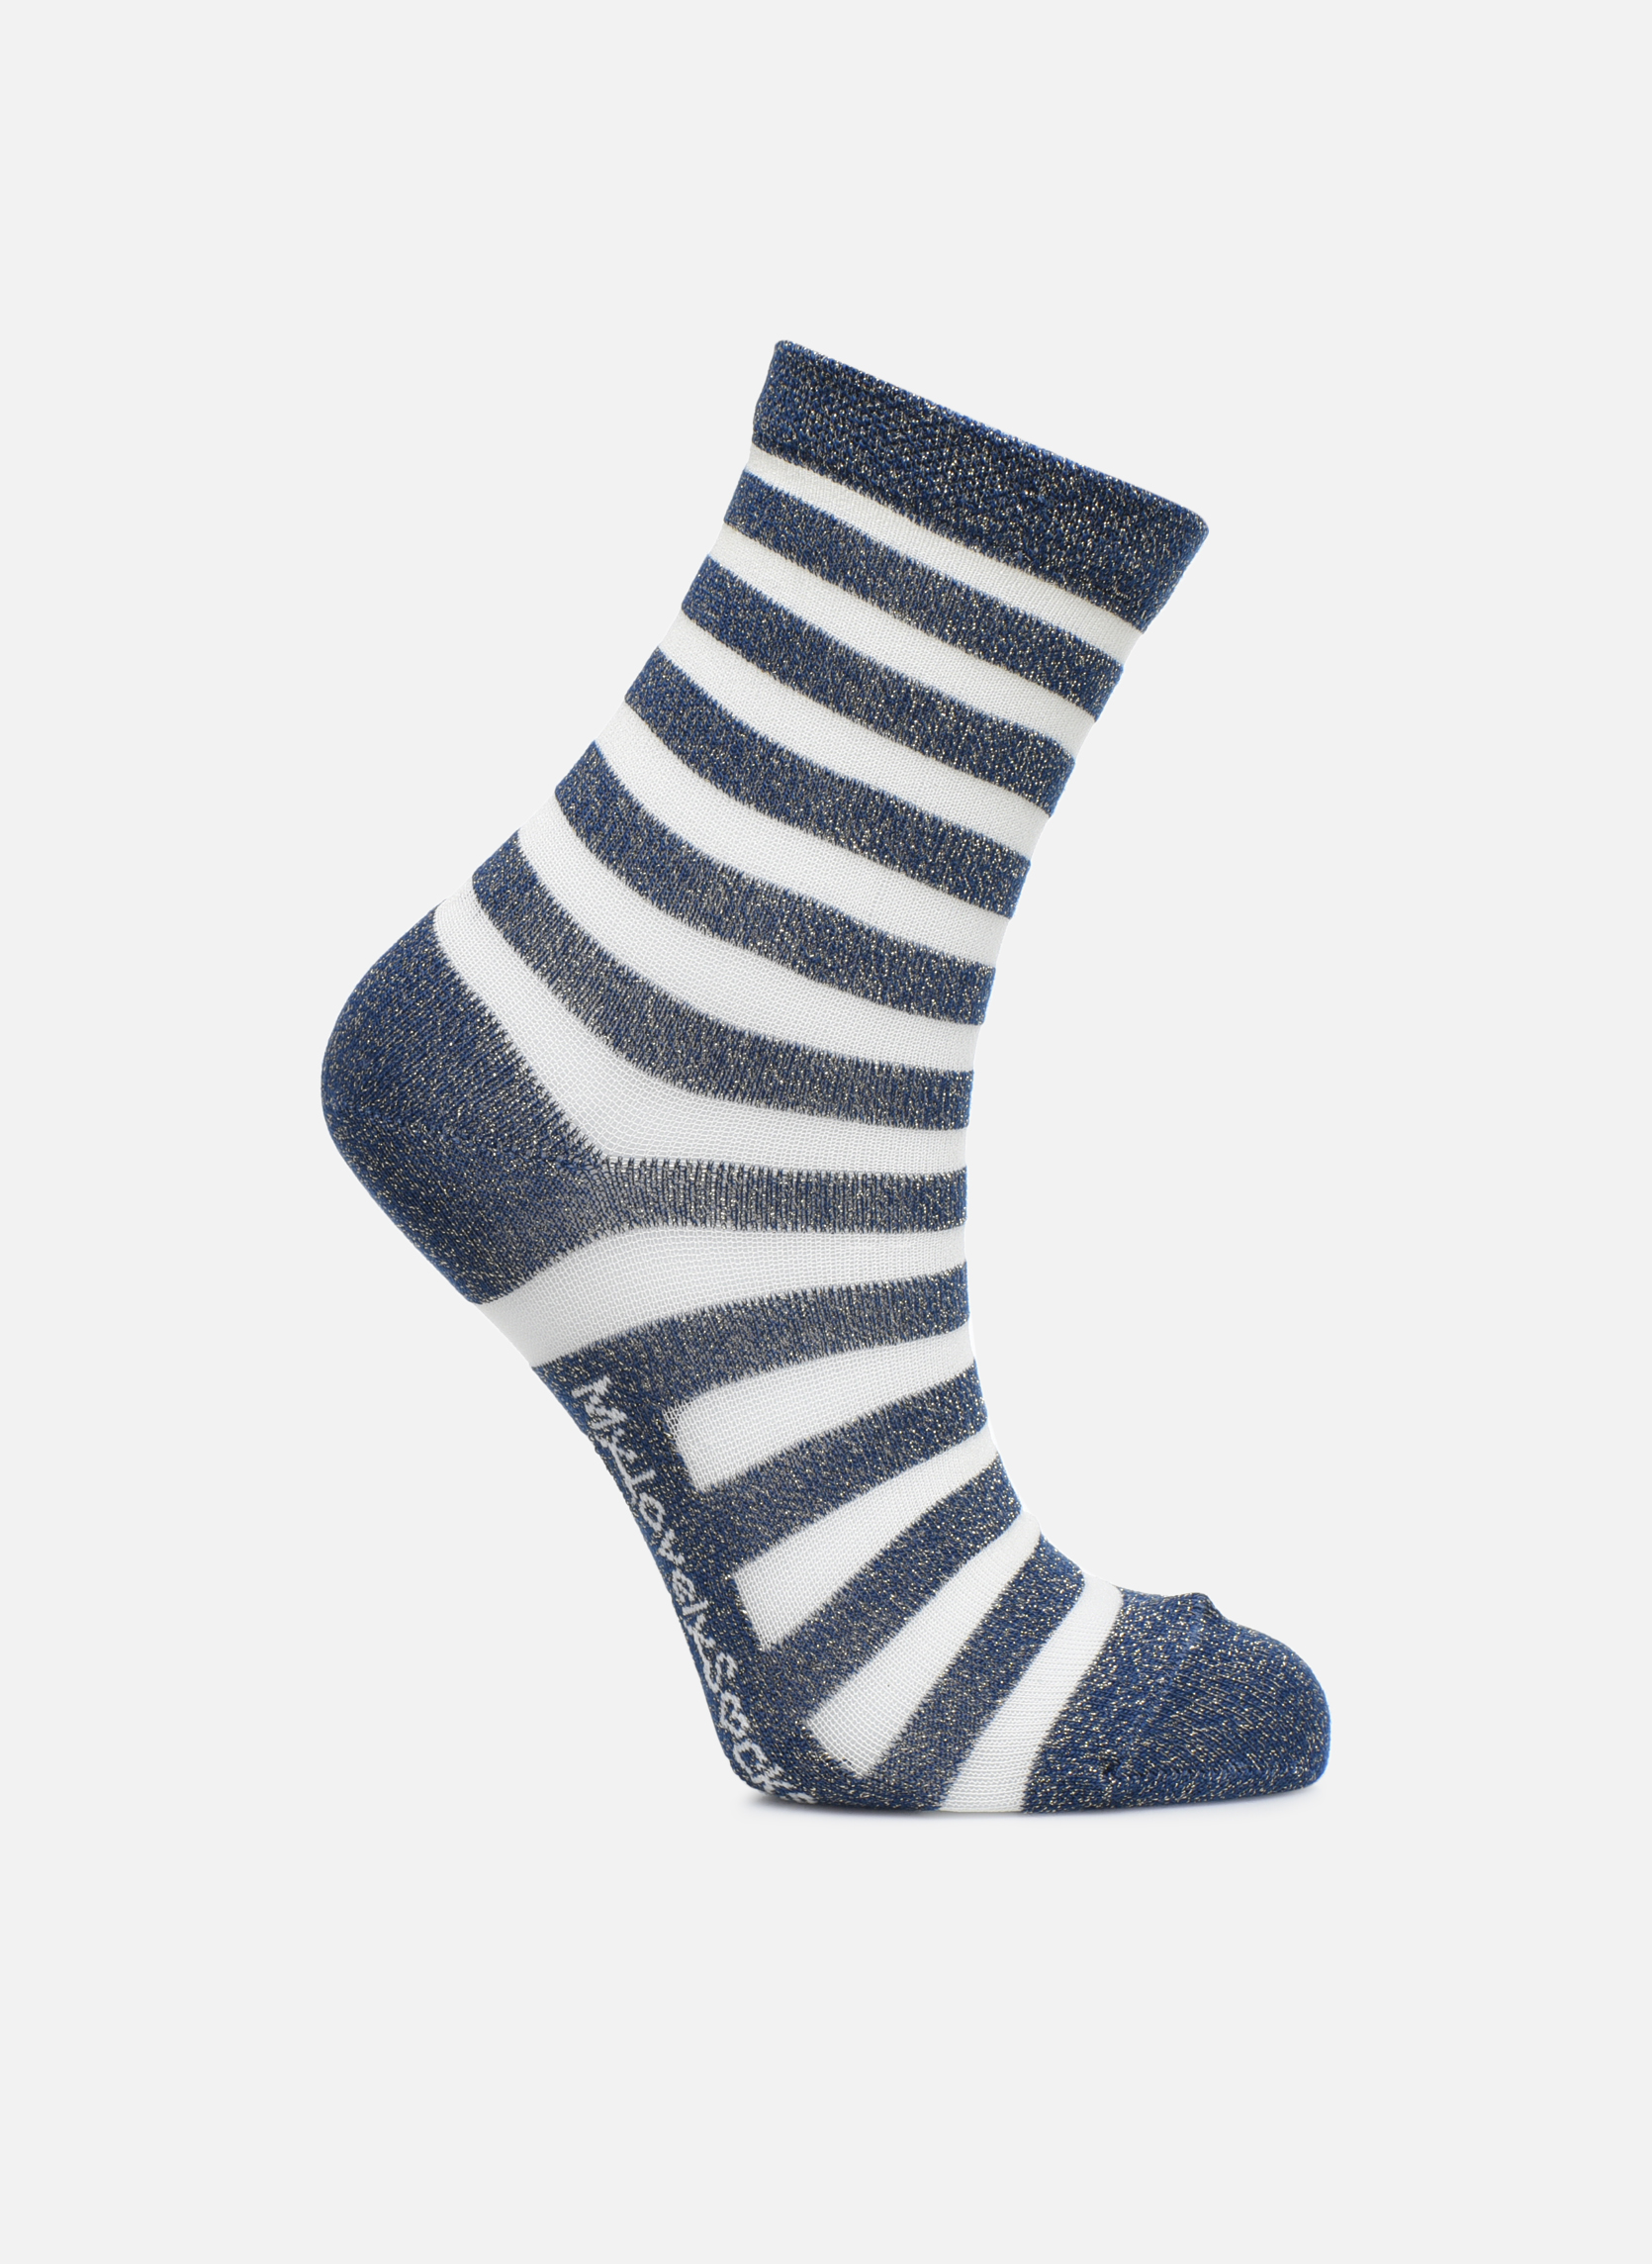 My Lovely Socks Faustine